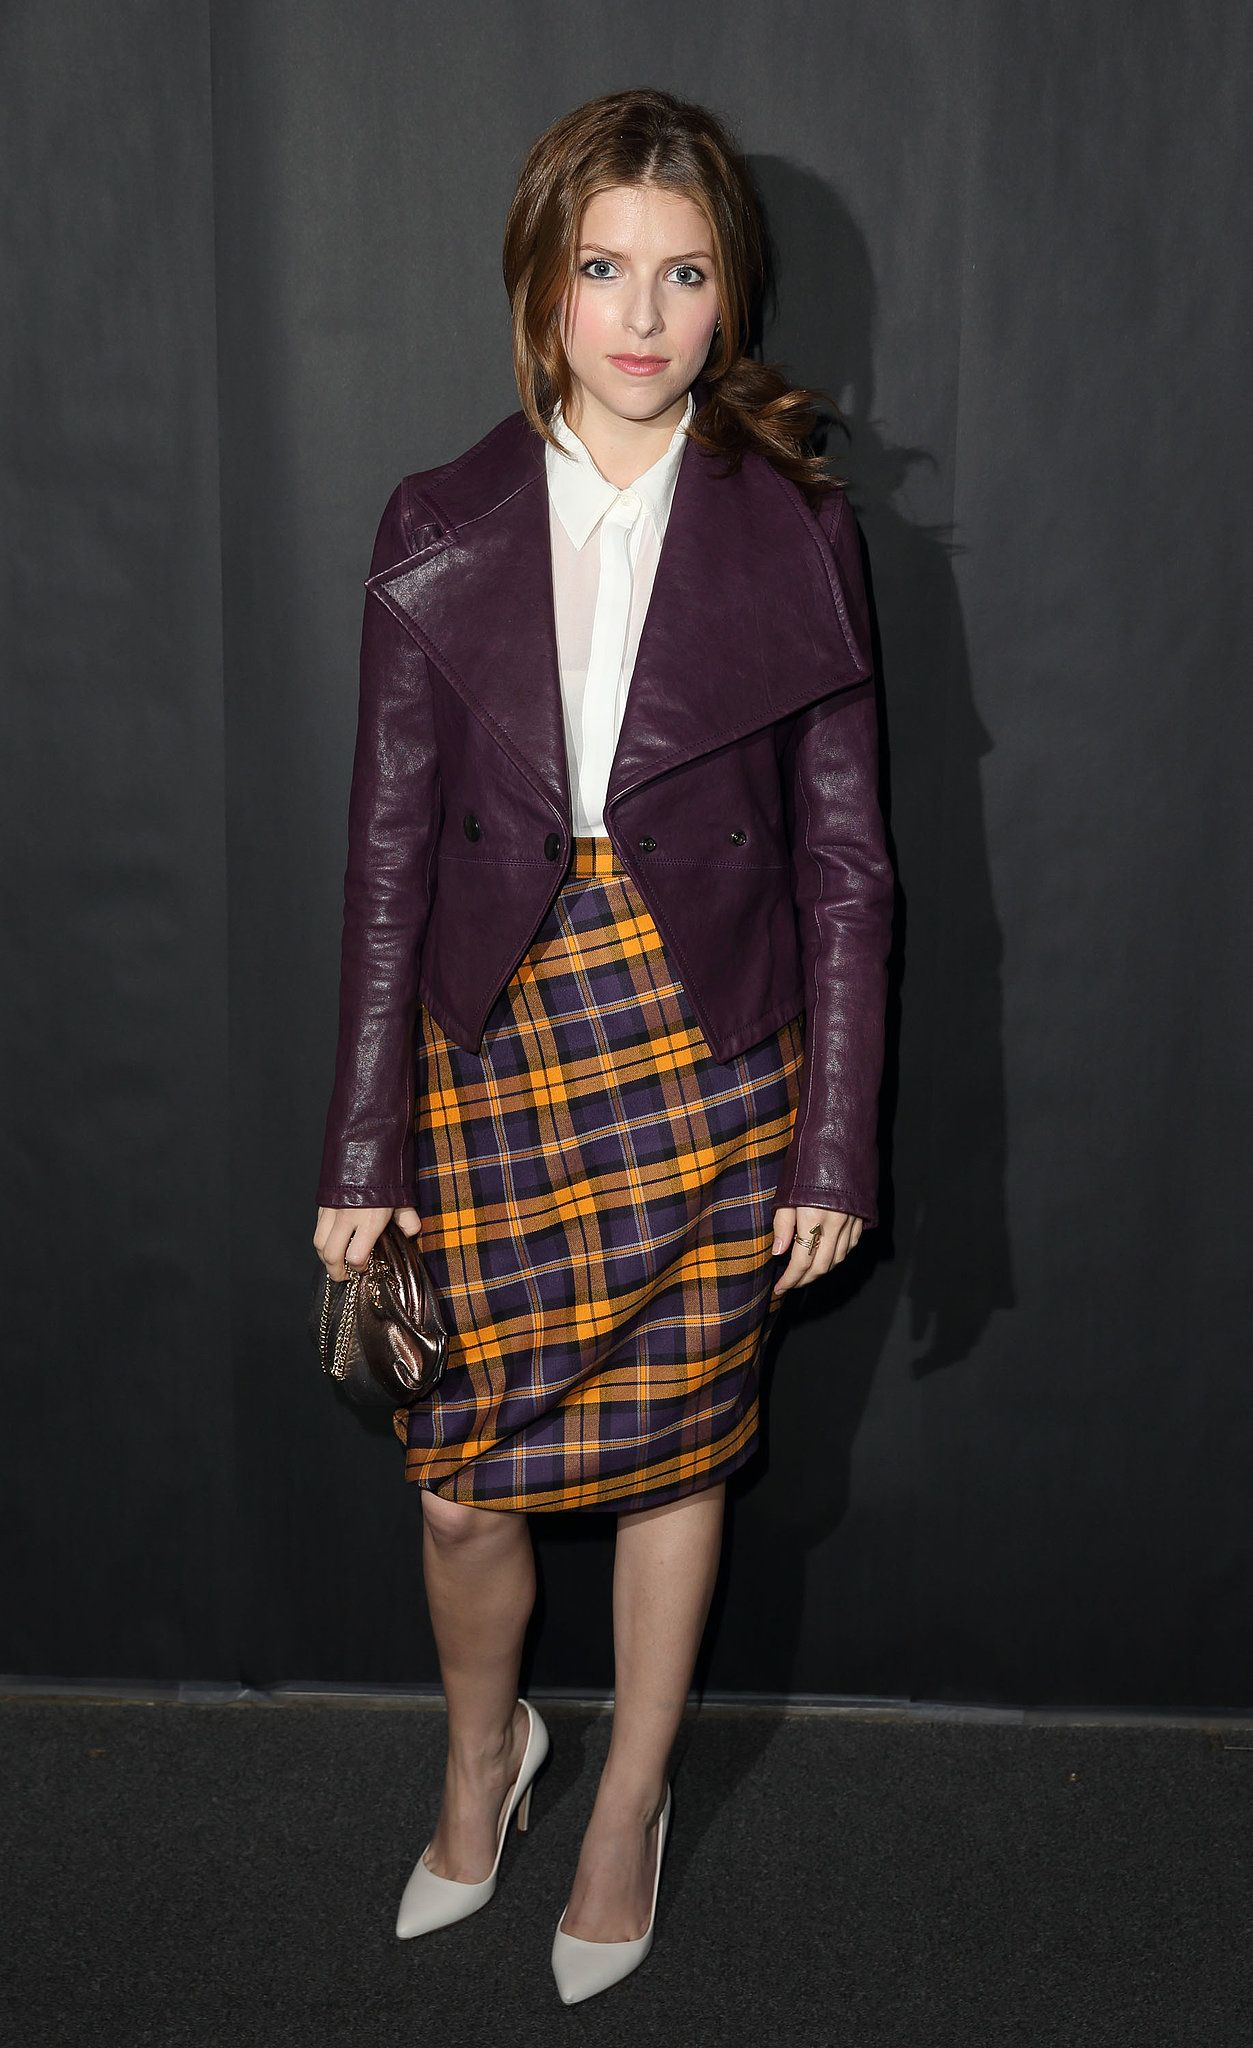 Anna Kendrick does sophisticated plaid